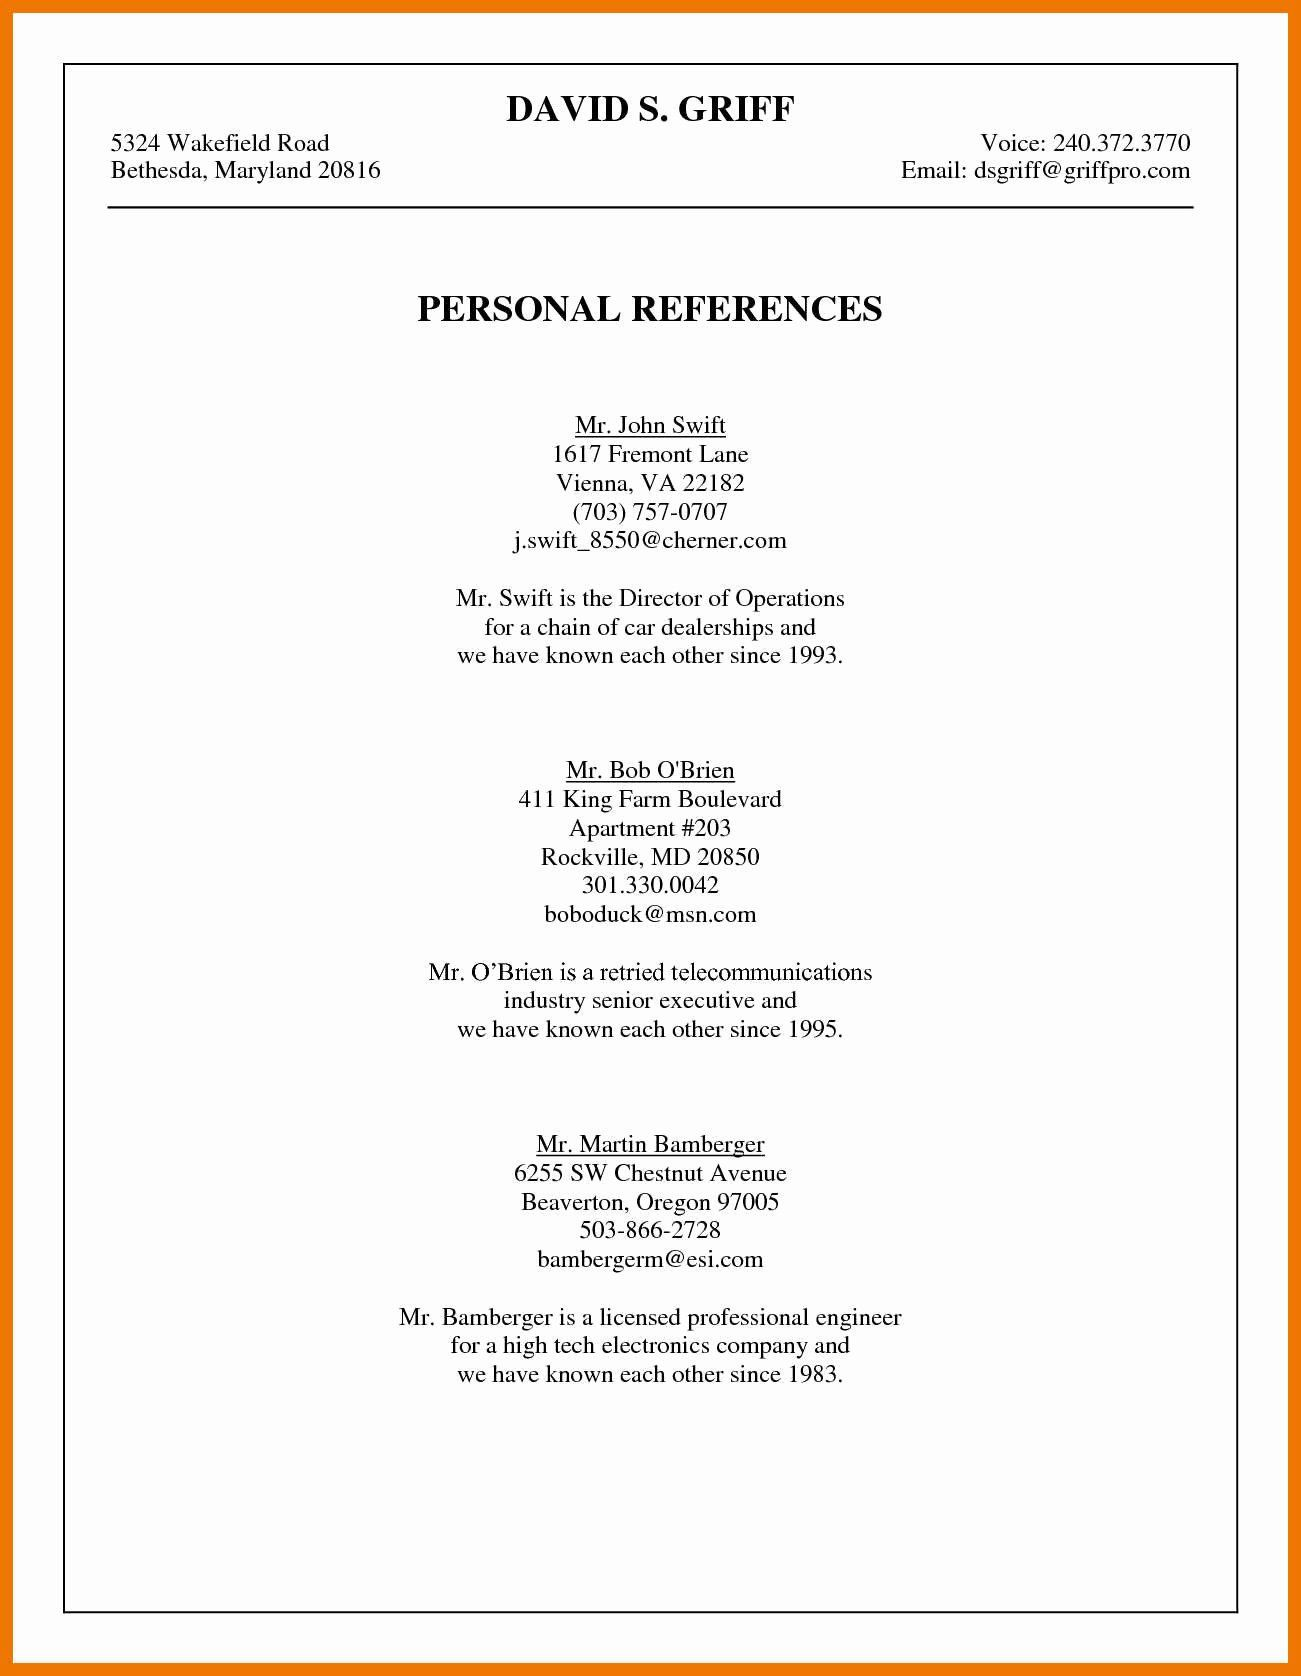 003 Phenomenal List Personal Reference Sample High Def Full